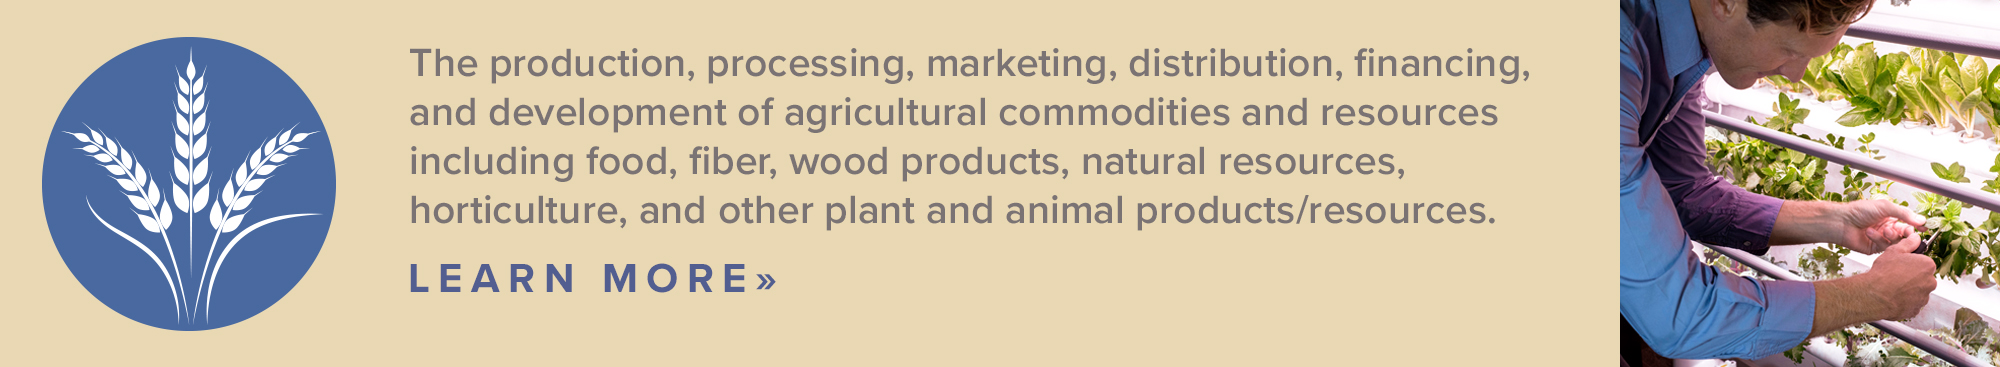 Agriculture, Food & Natural Resources